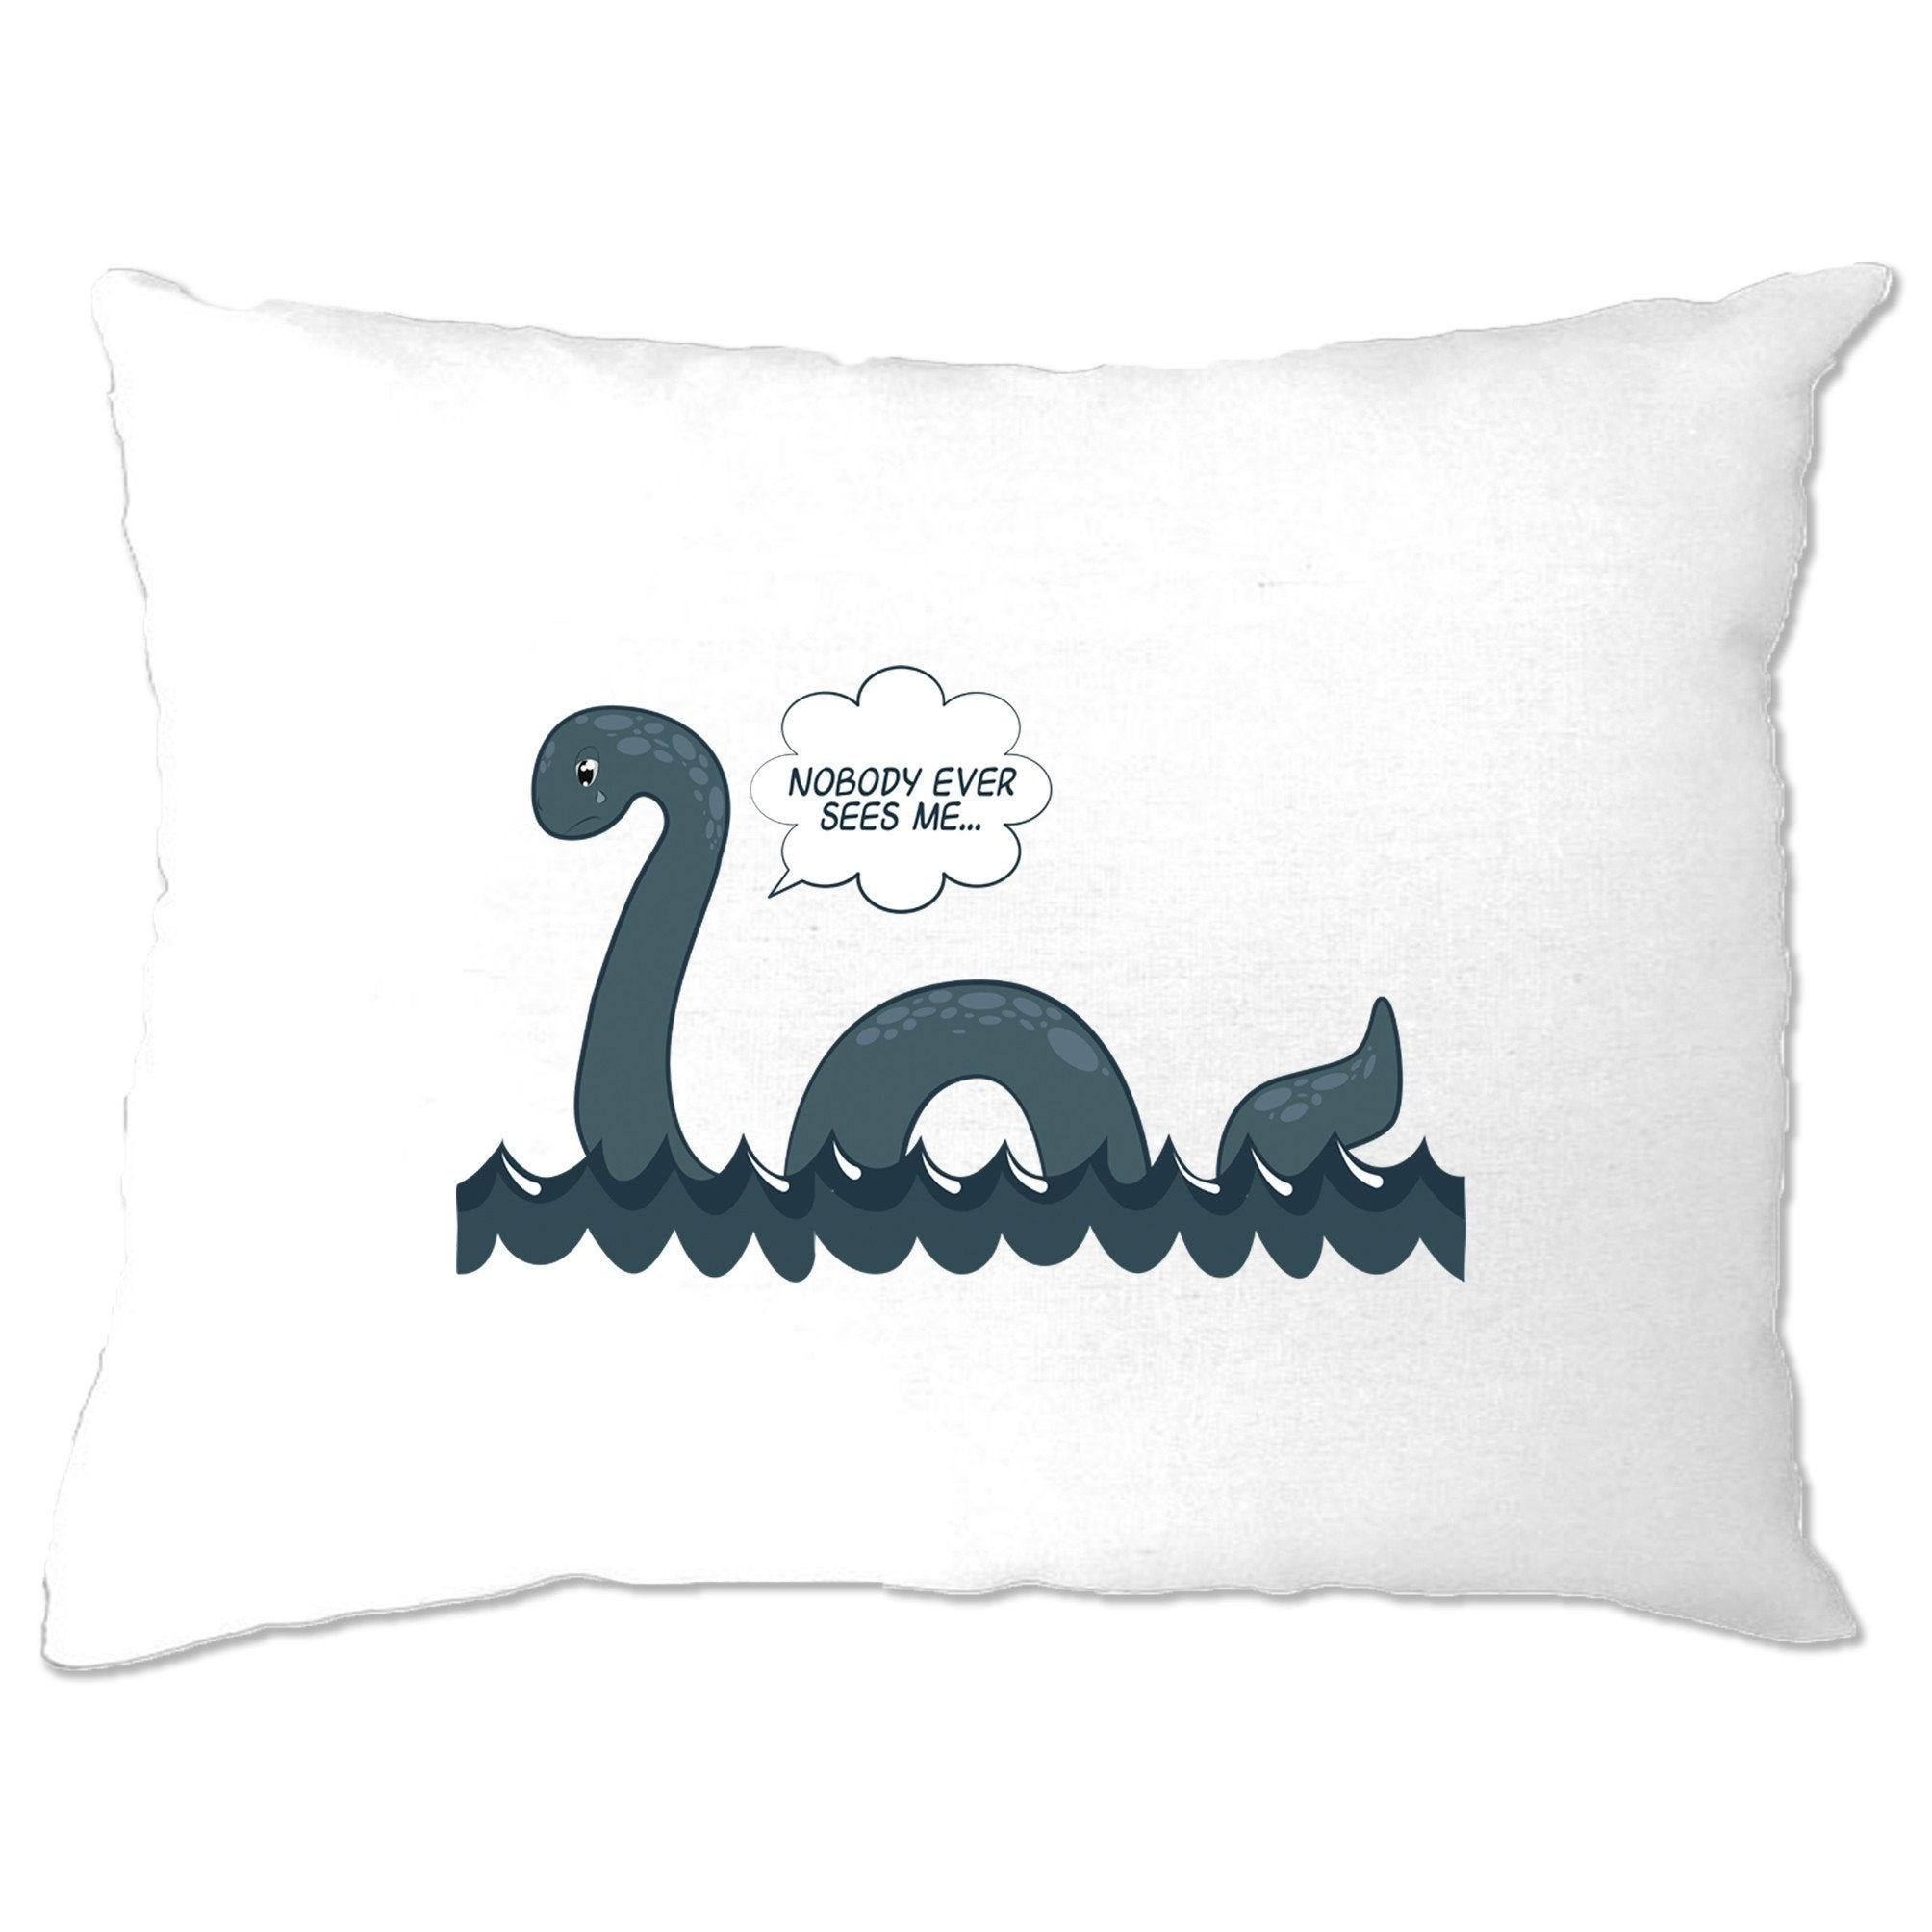 Loch Ness Monster Pillow Case Nobody Sees Me Joke